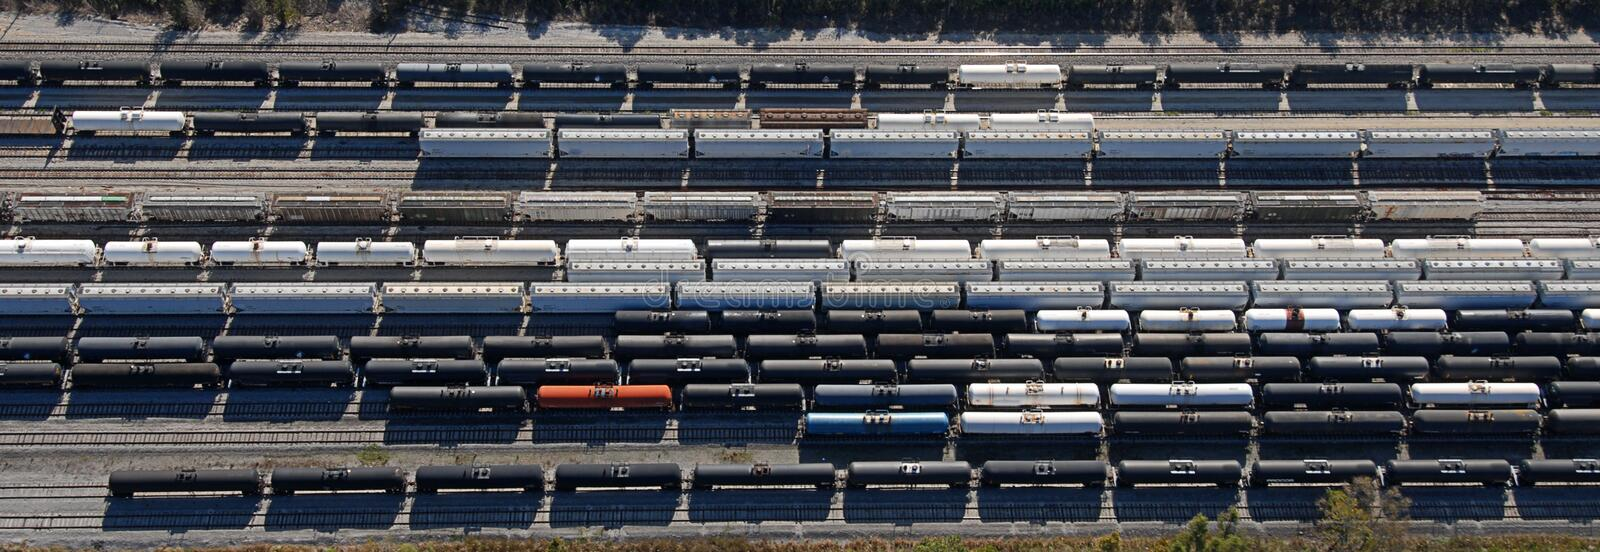 Railcar patroon boven lucht stock foto's